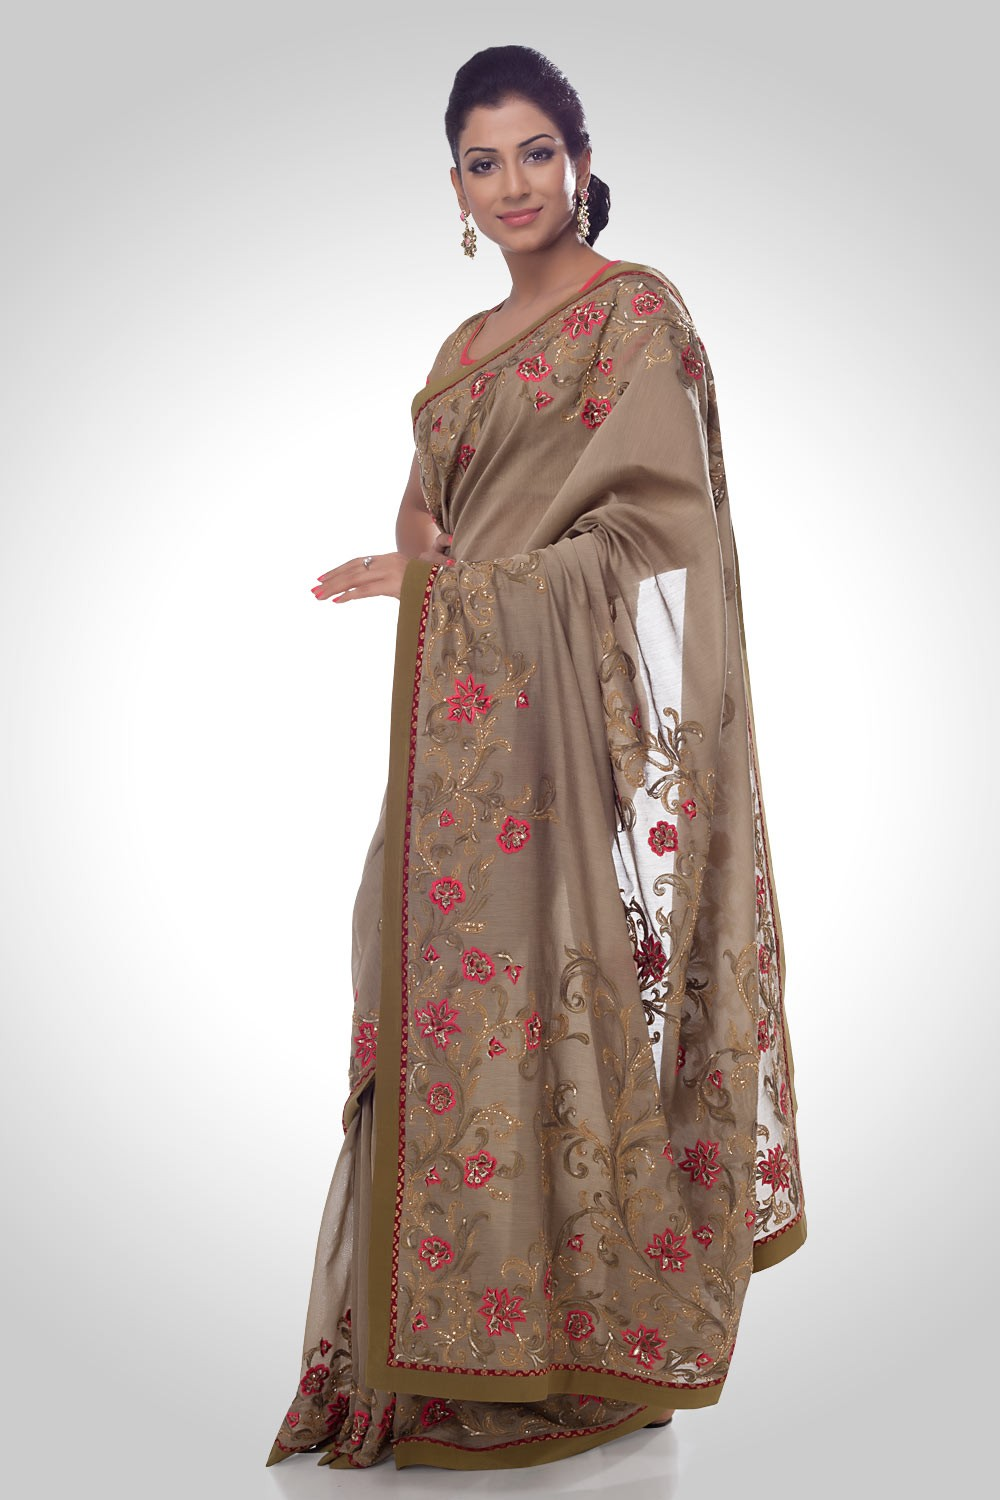 Satya-Paul-saree-collection (19)